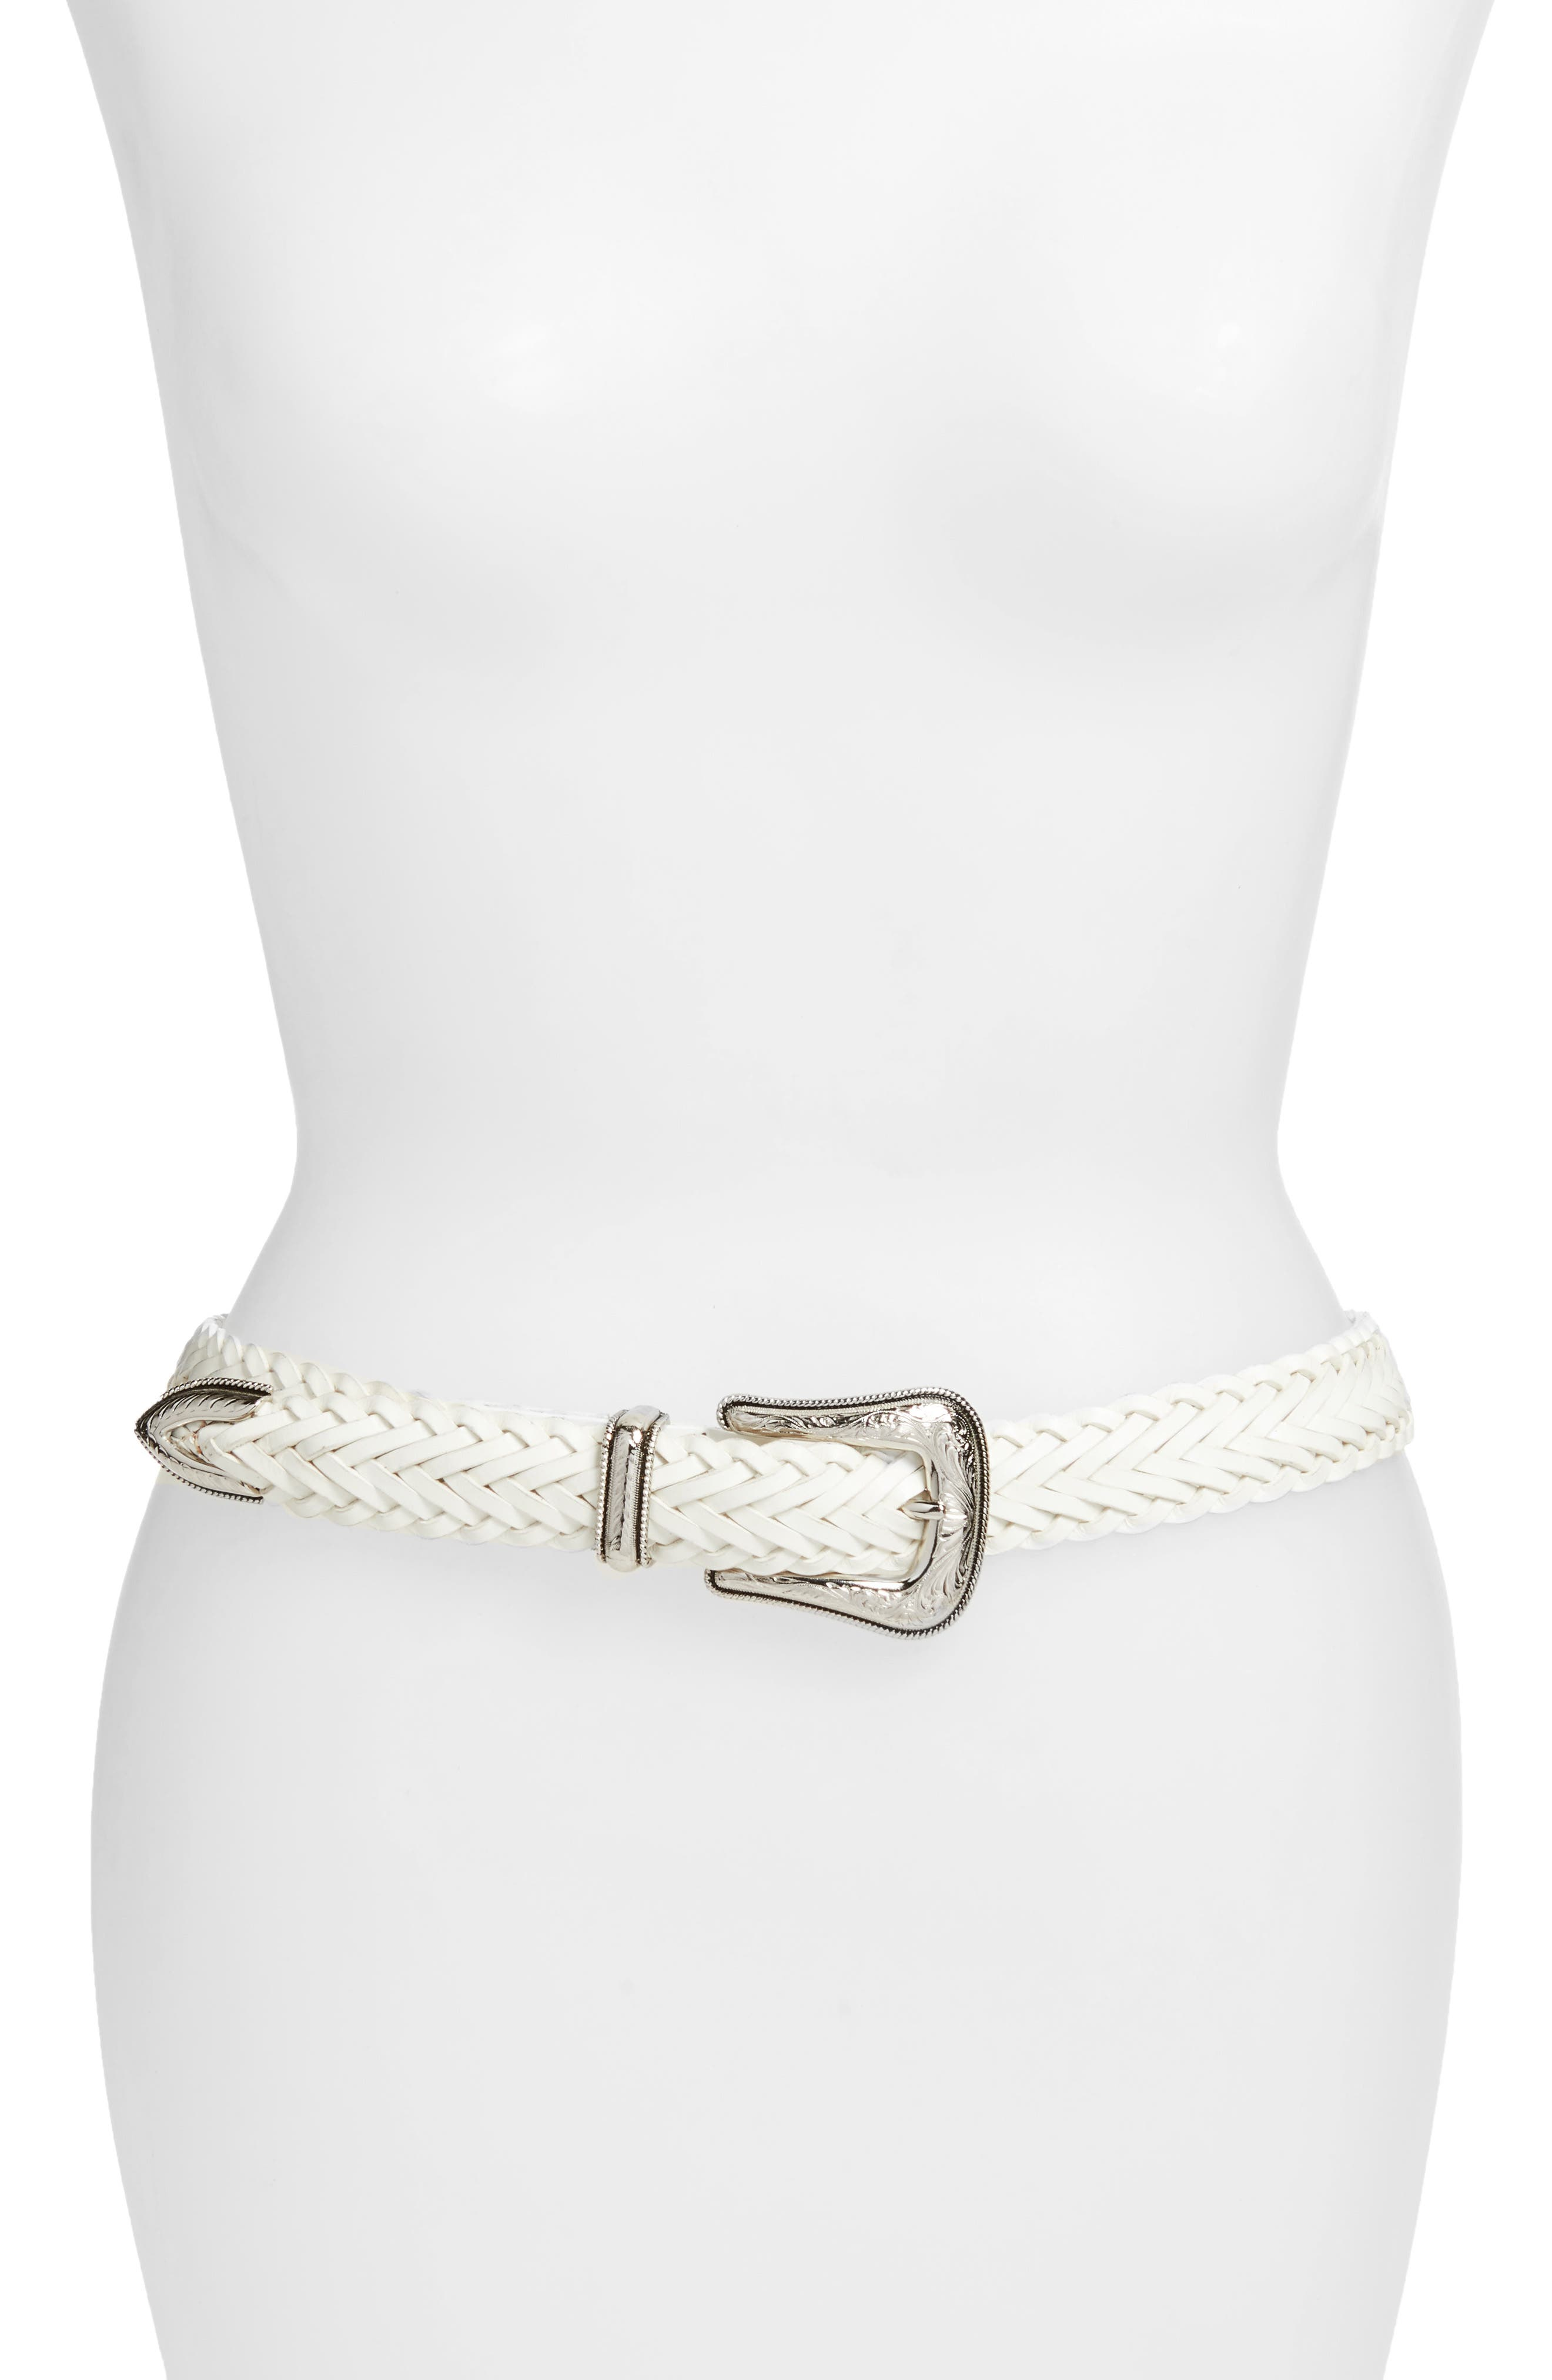 Rebecca Minkoff Braided Leather Belt